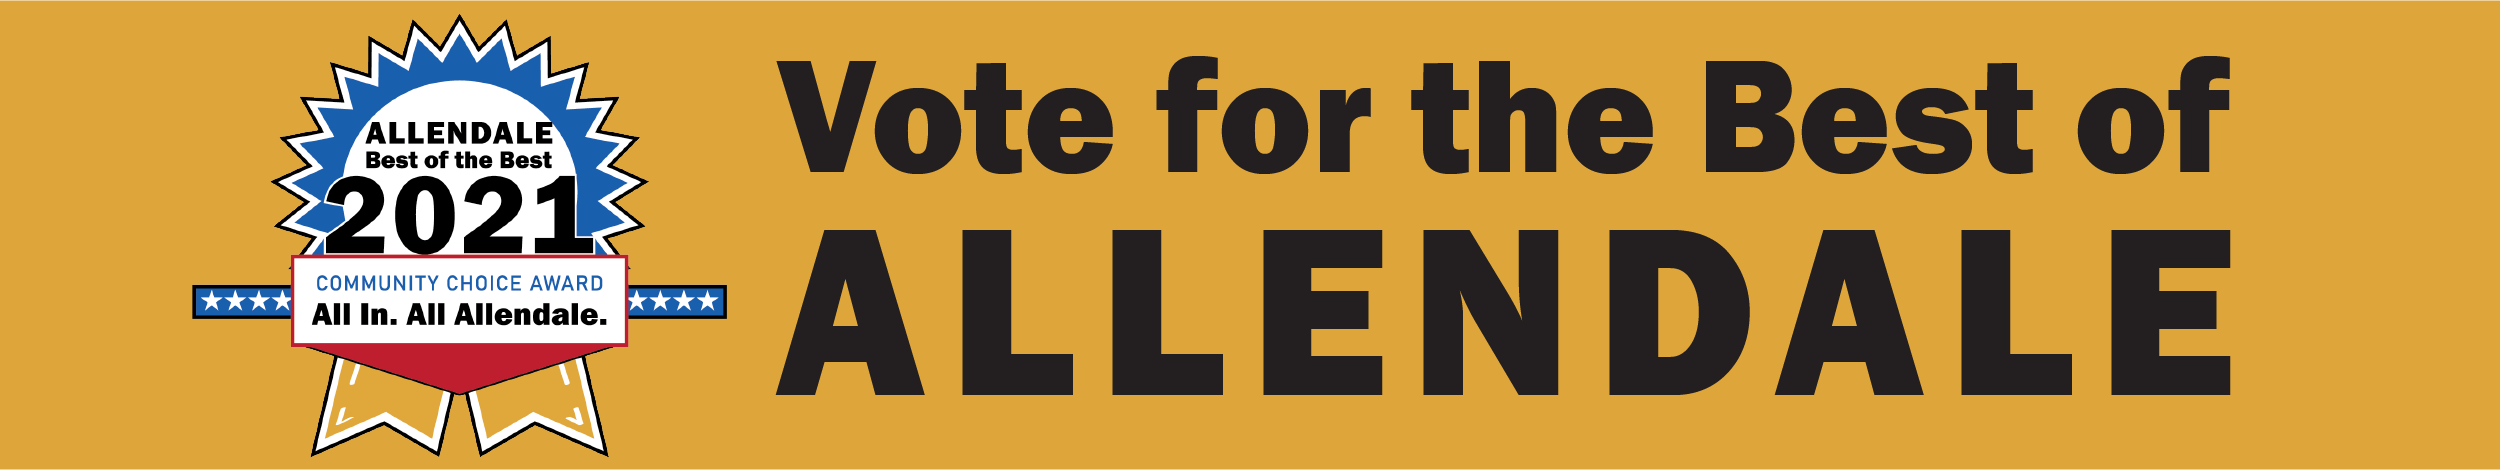 Vote for the Best of Allendale